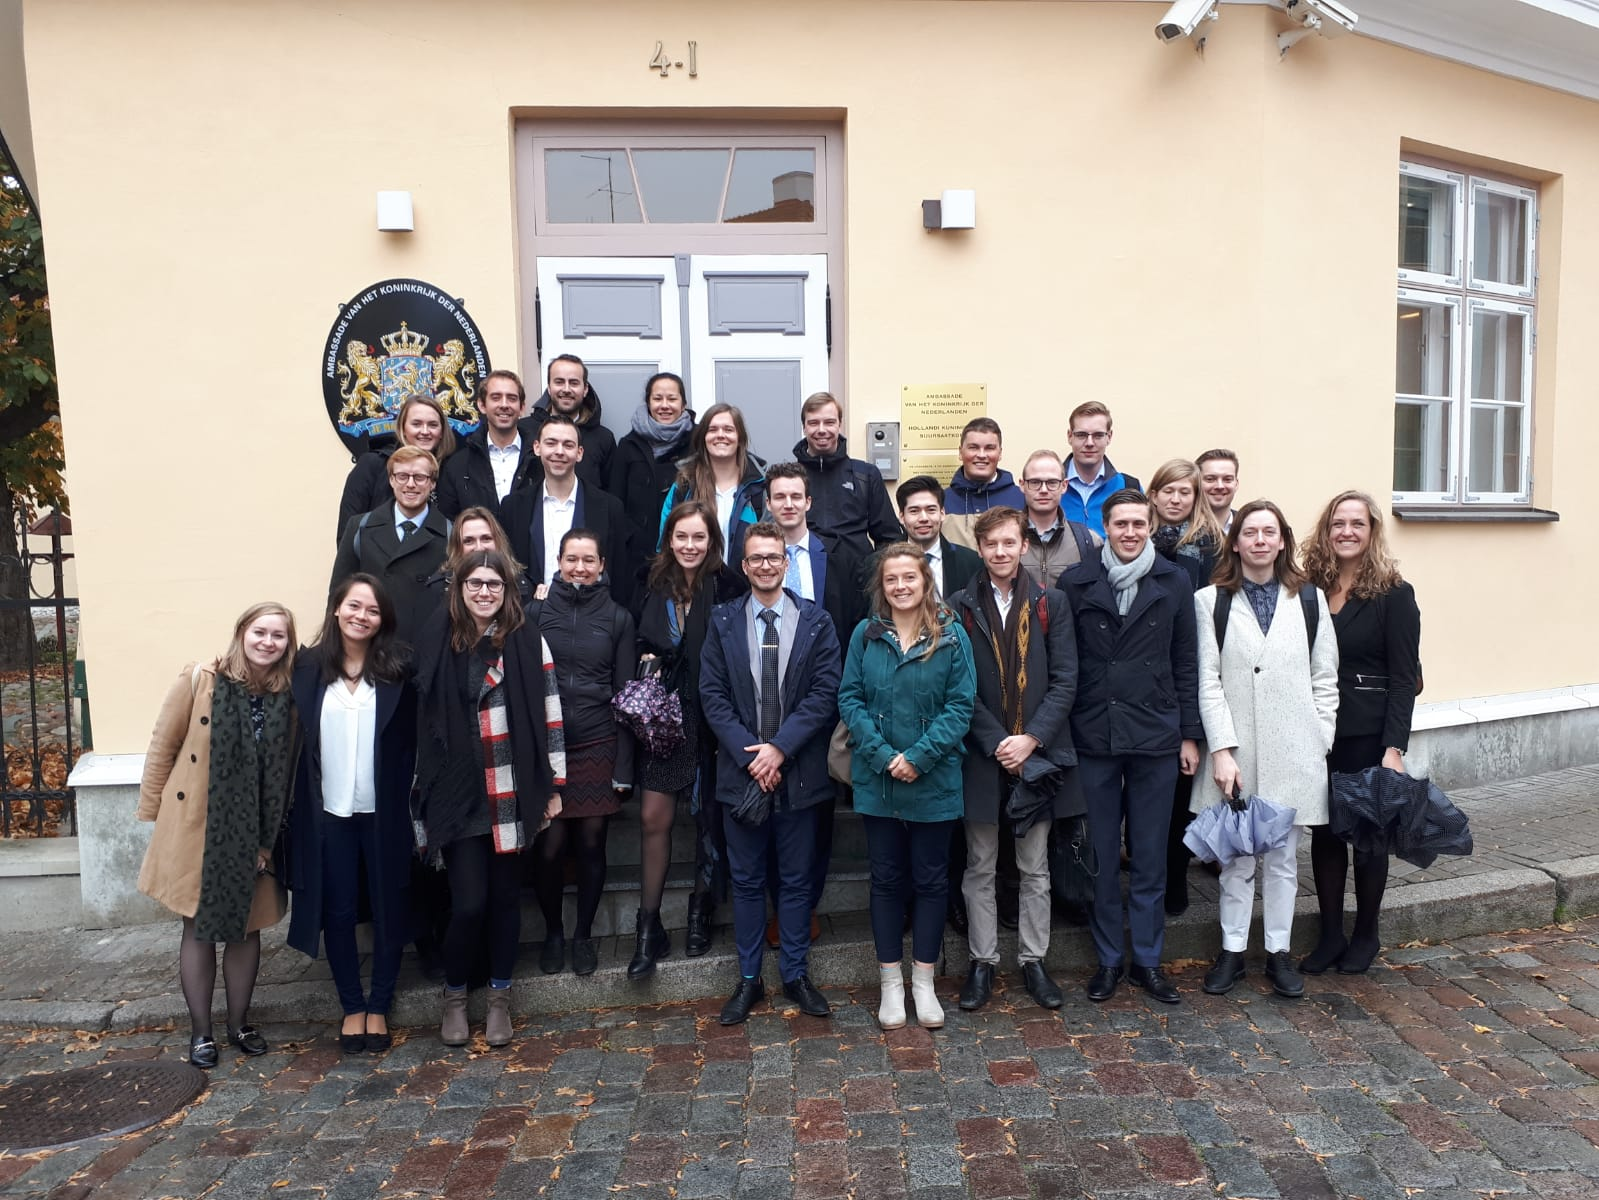 Trainees voor de ambassade in Estland